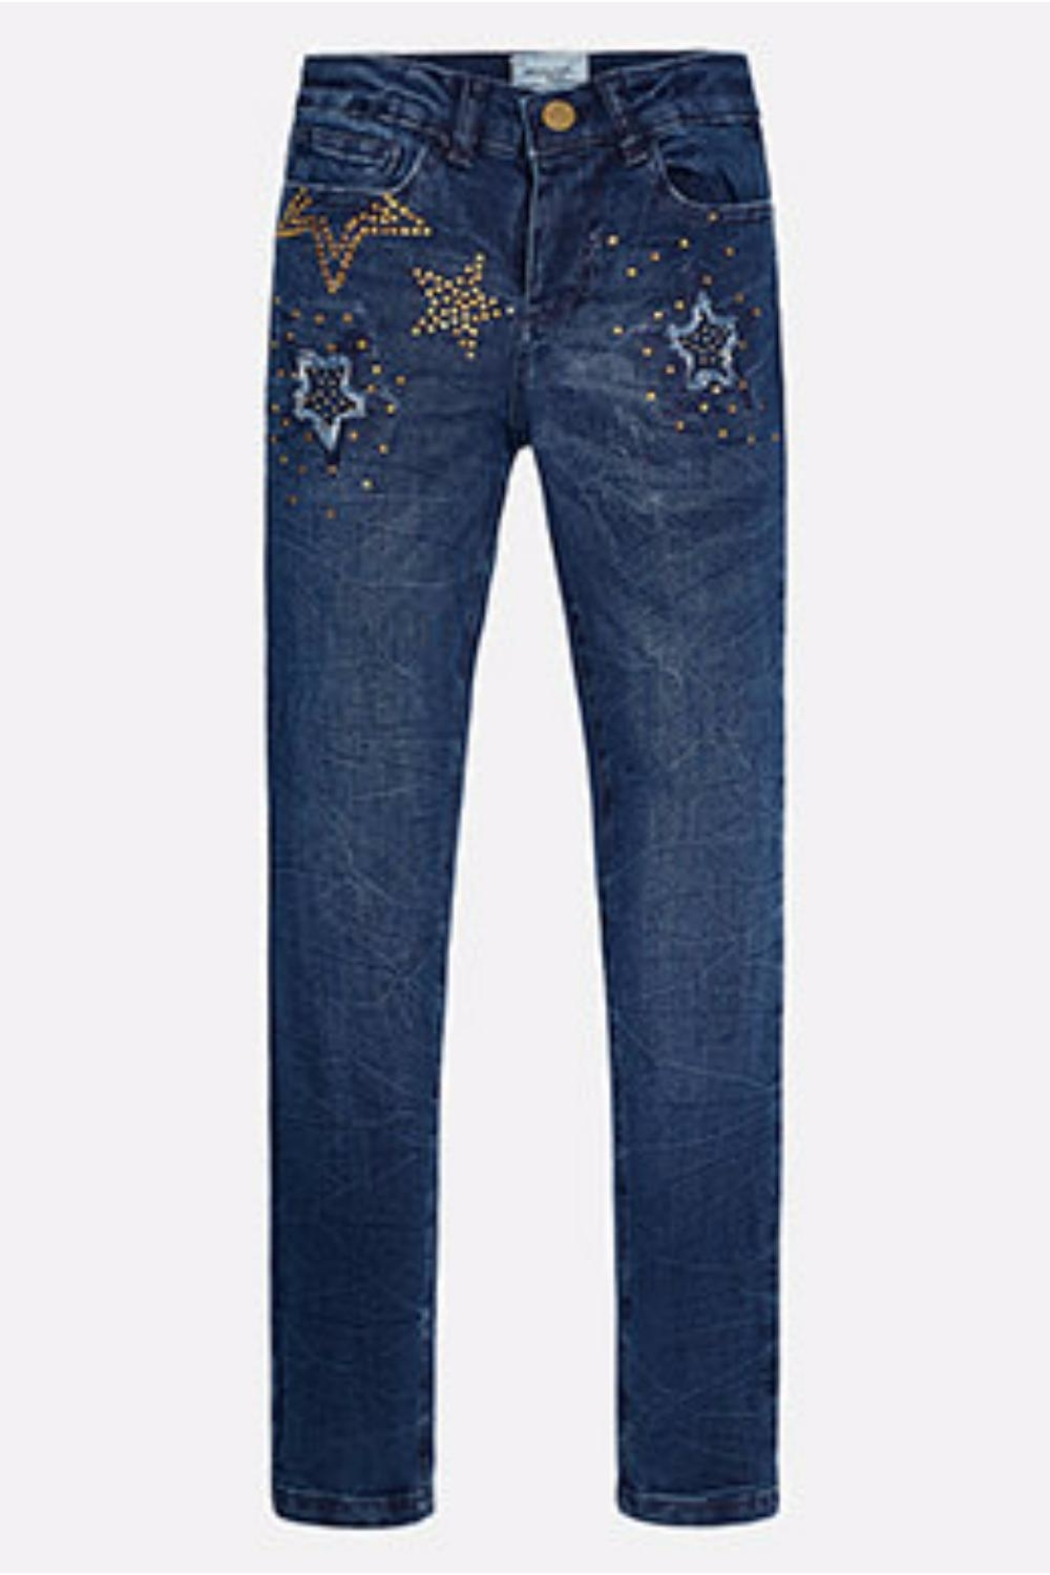 Mayoral Star Denim Jeans - Main Image